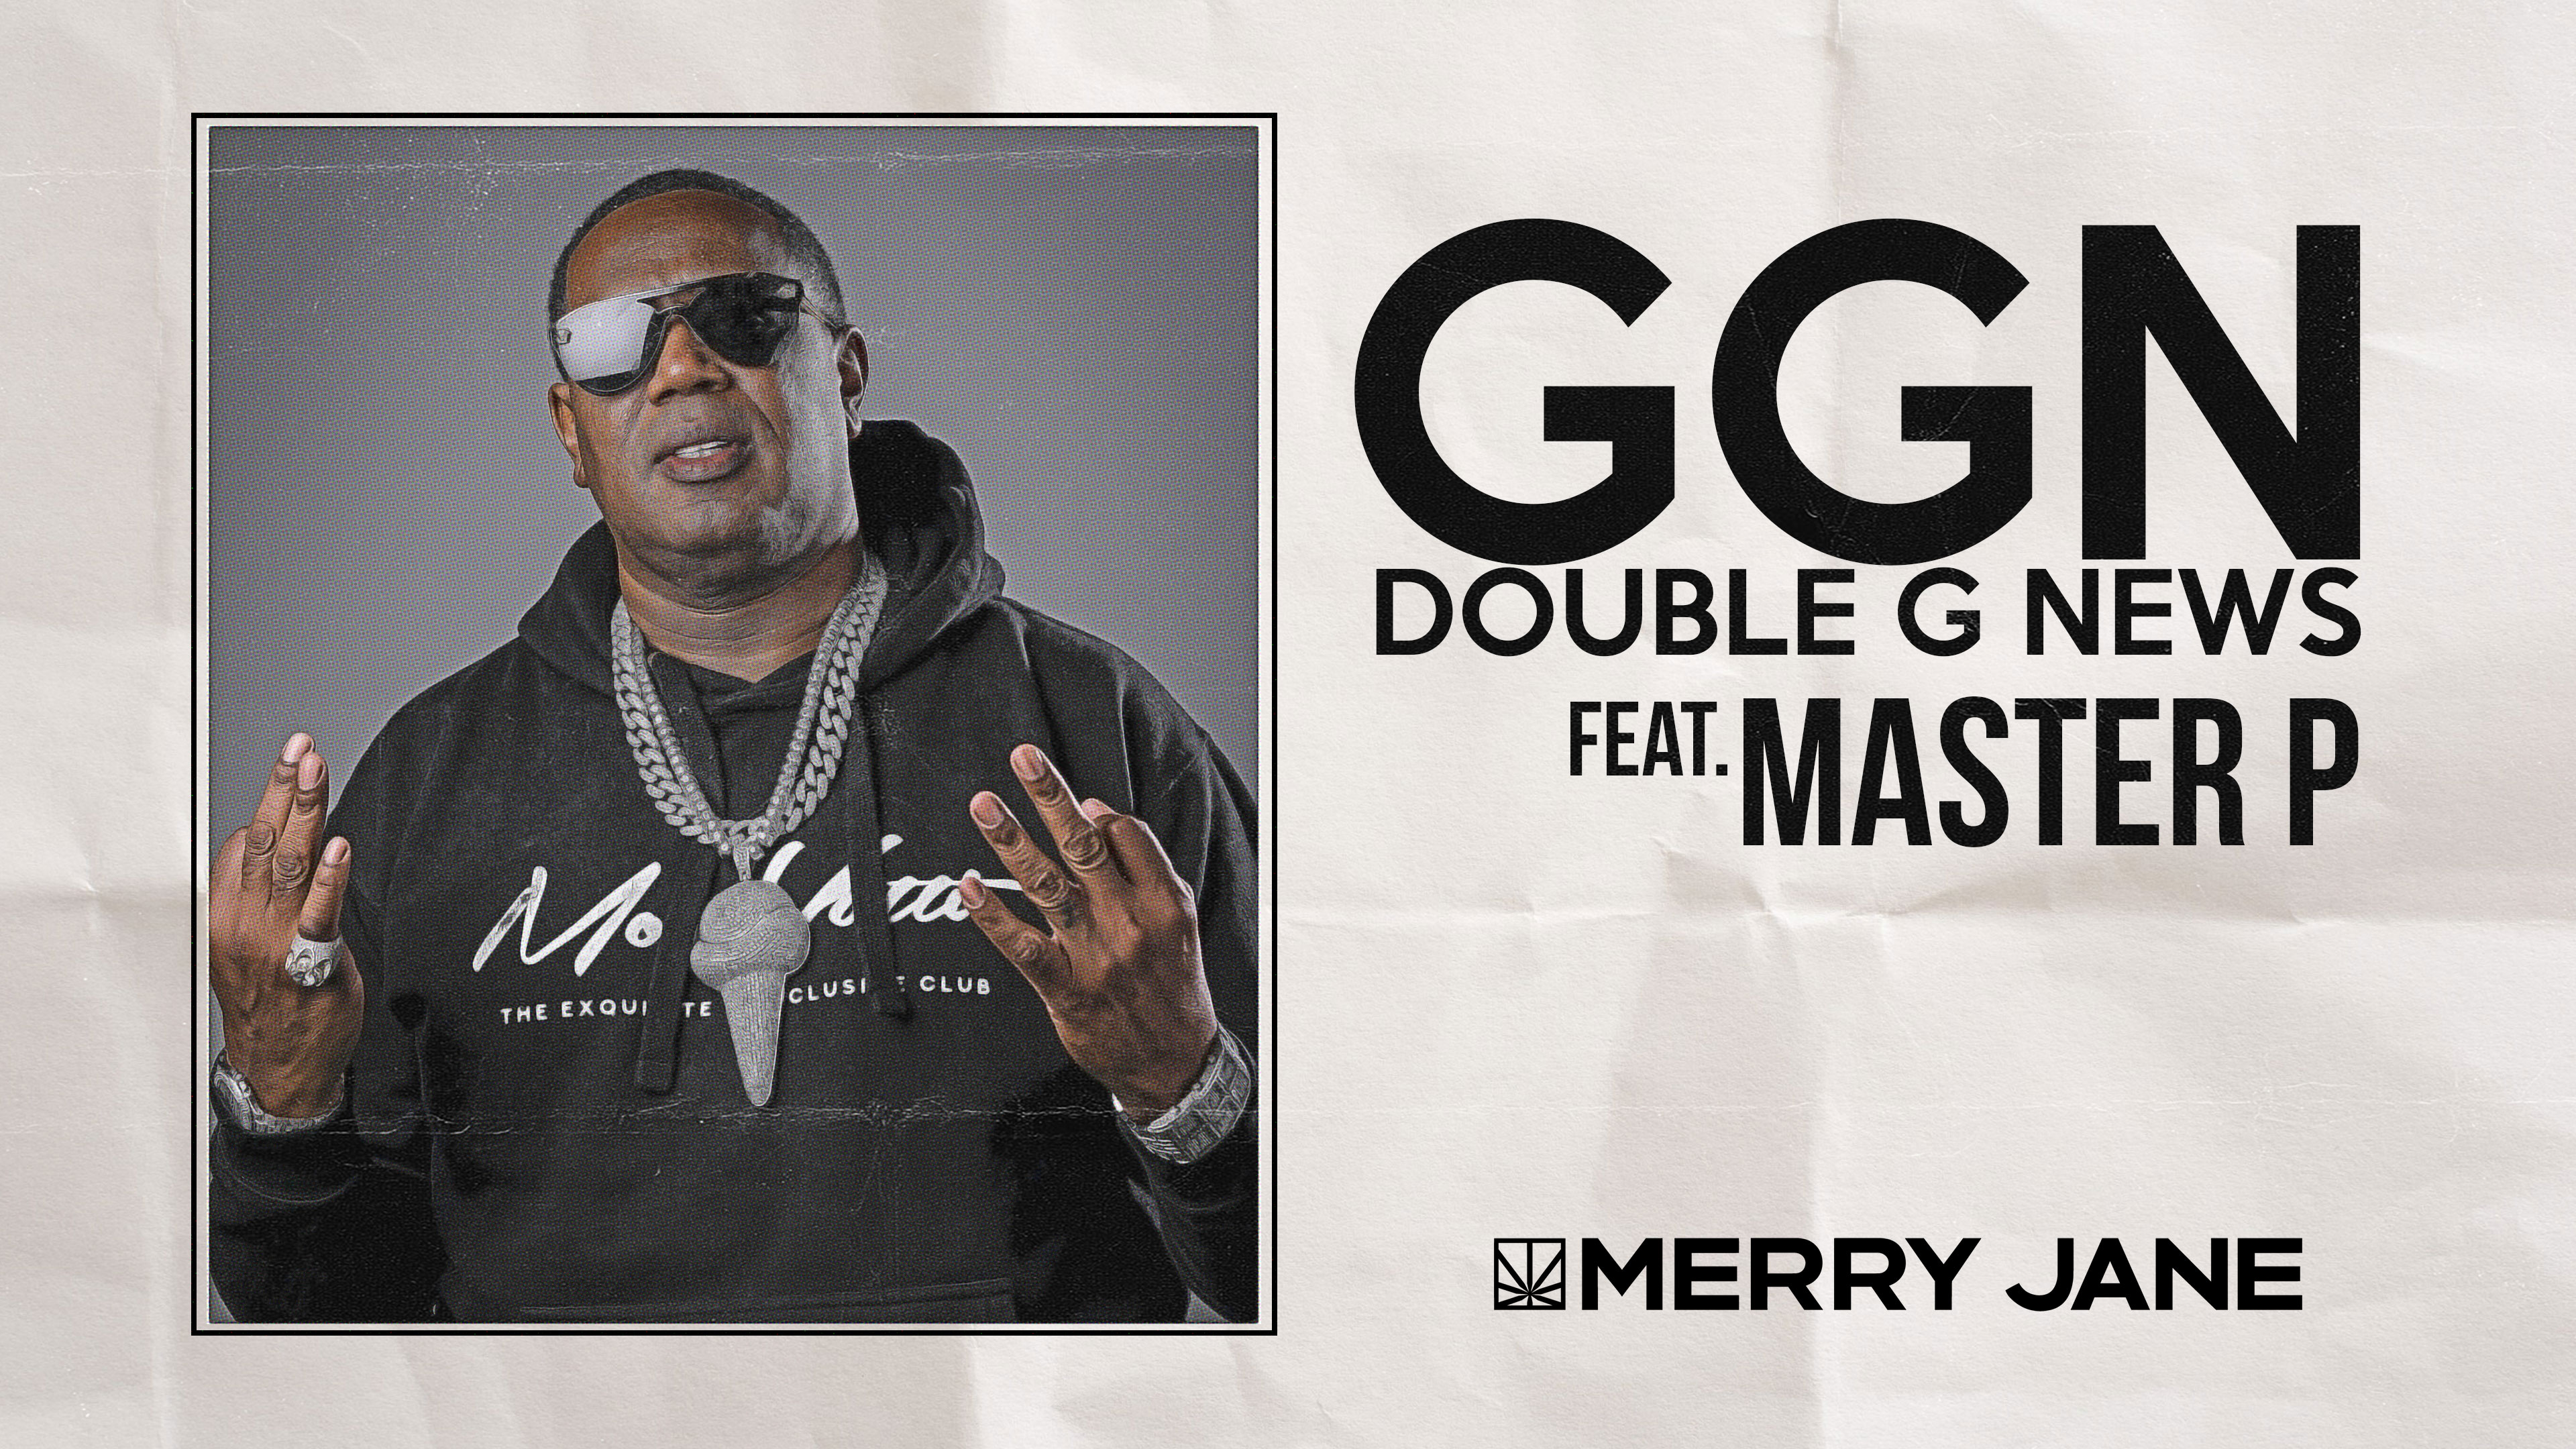 Master P Talks Hustling and Entrepreneurship with Snoop Dogg on a New GGN